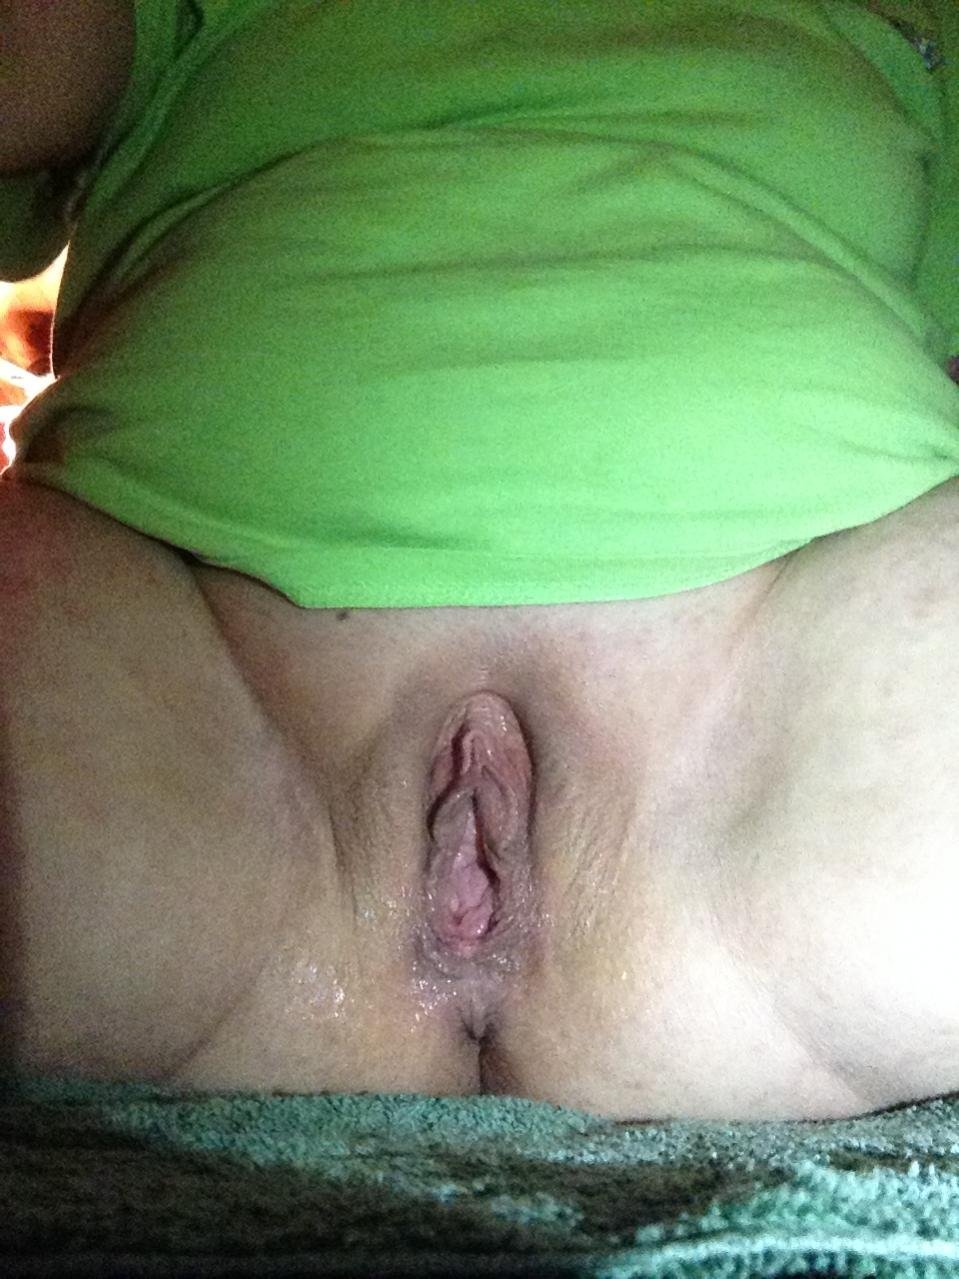 best of sharing wife youporn